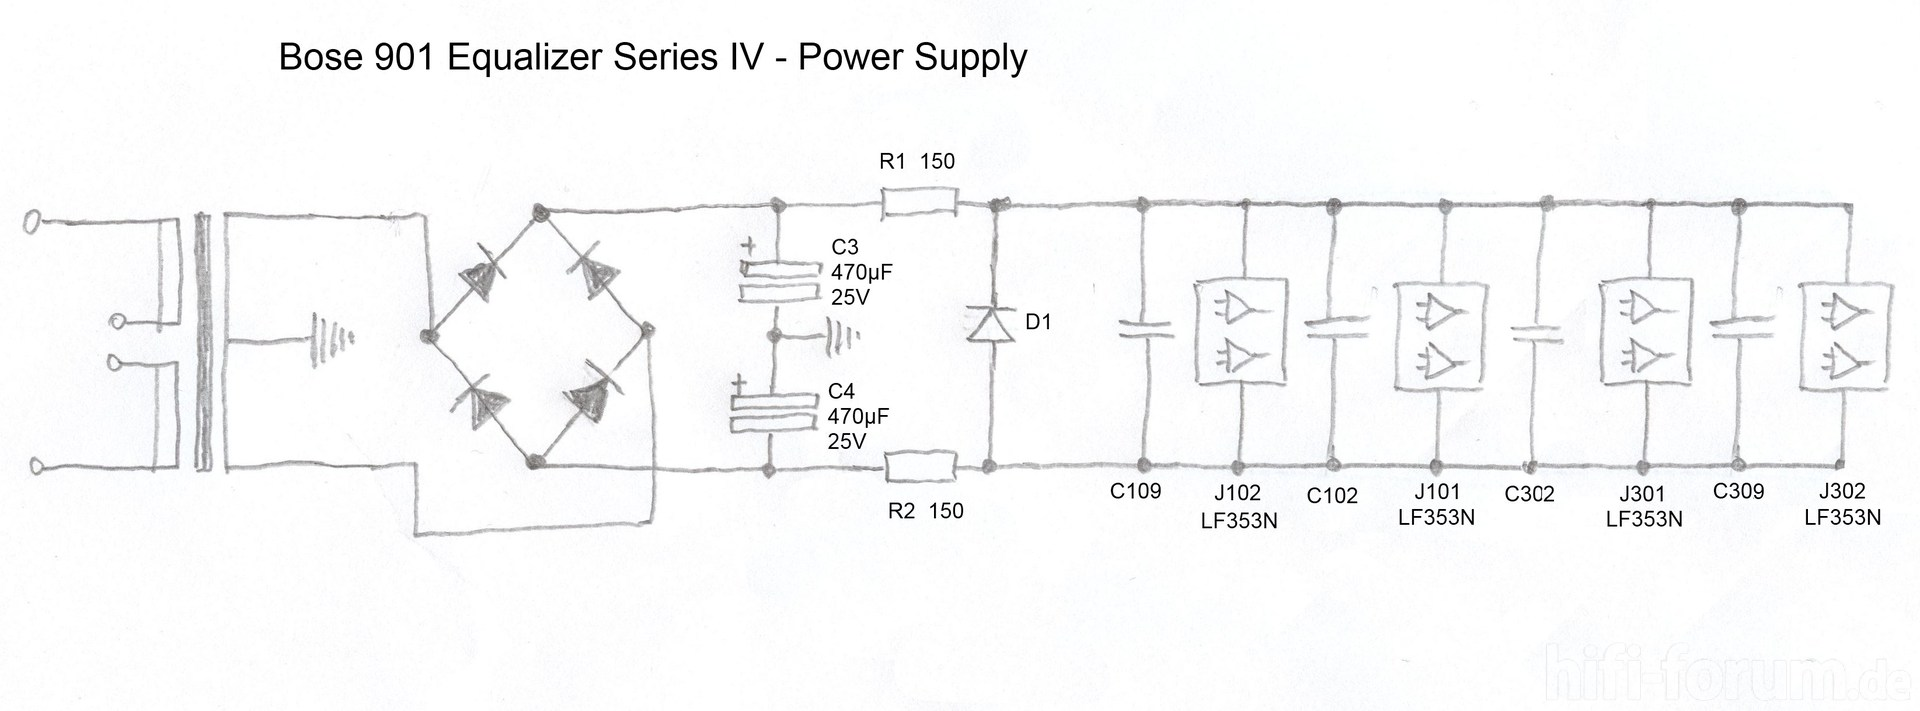 bose 901 equalizer iv schematic detail power supply_214315 bose 901 equalizer schematic bose 901 wiring diagram bose bose 901 series iv wiring diagram at gsmx.co